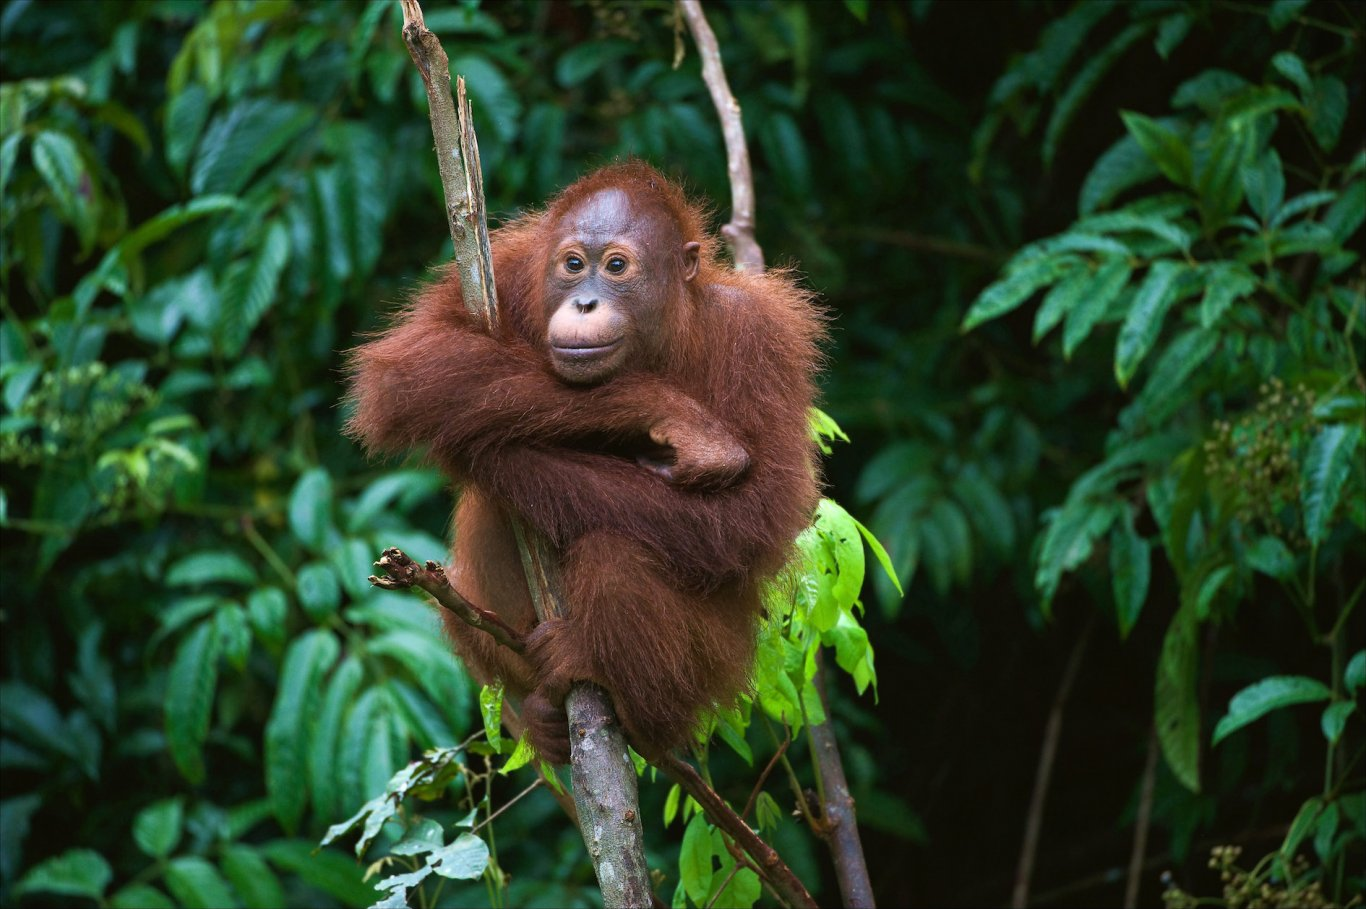 Orangutan in Borneo climbing tree